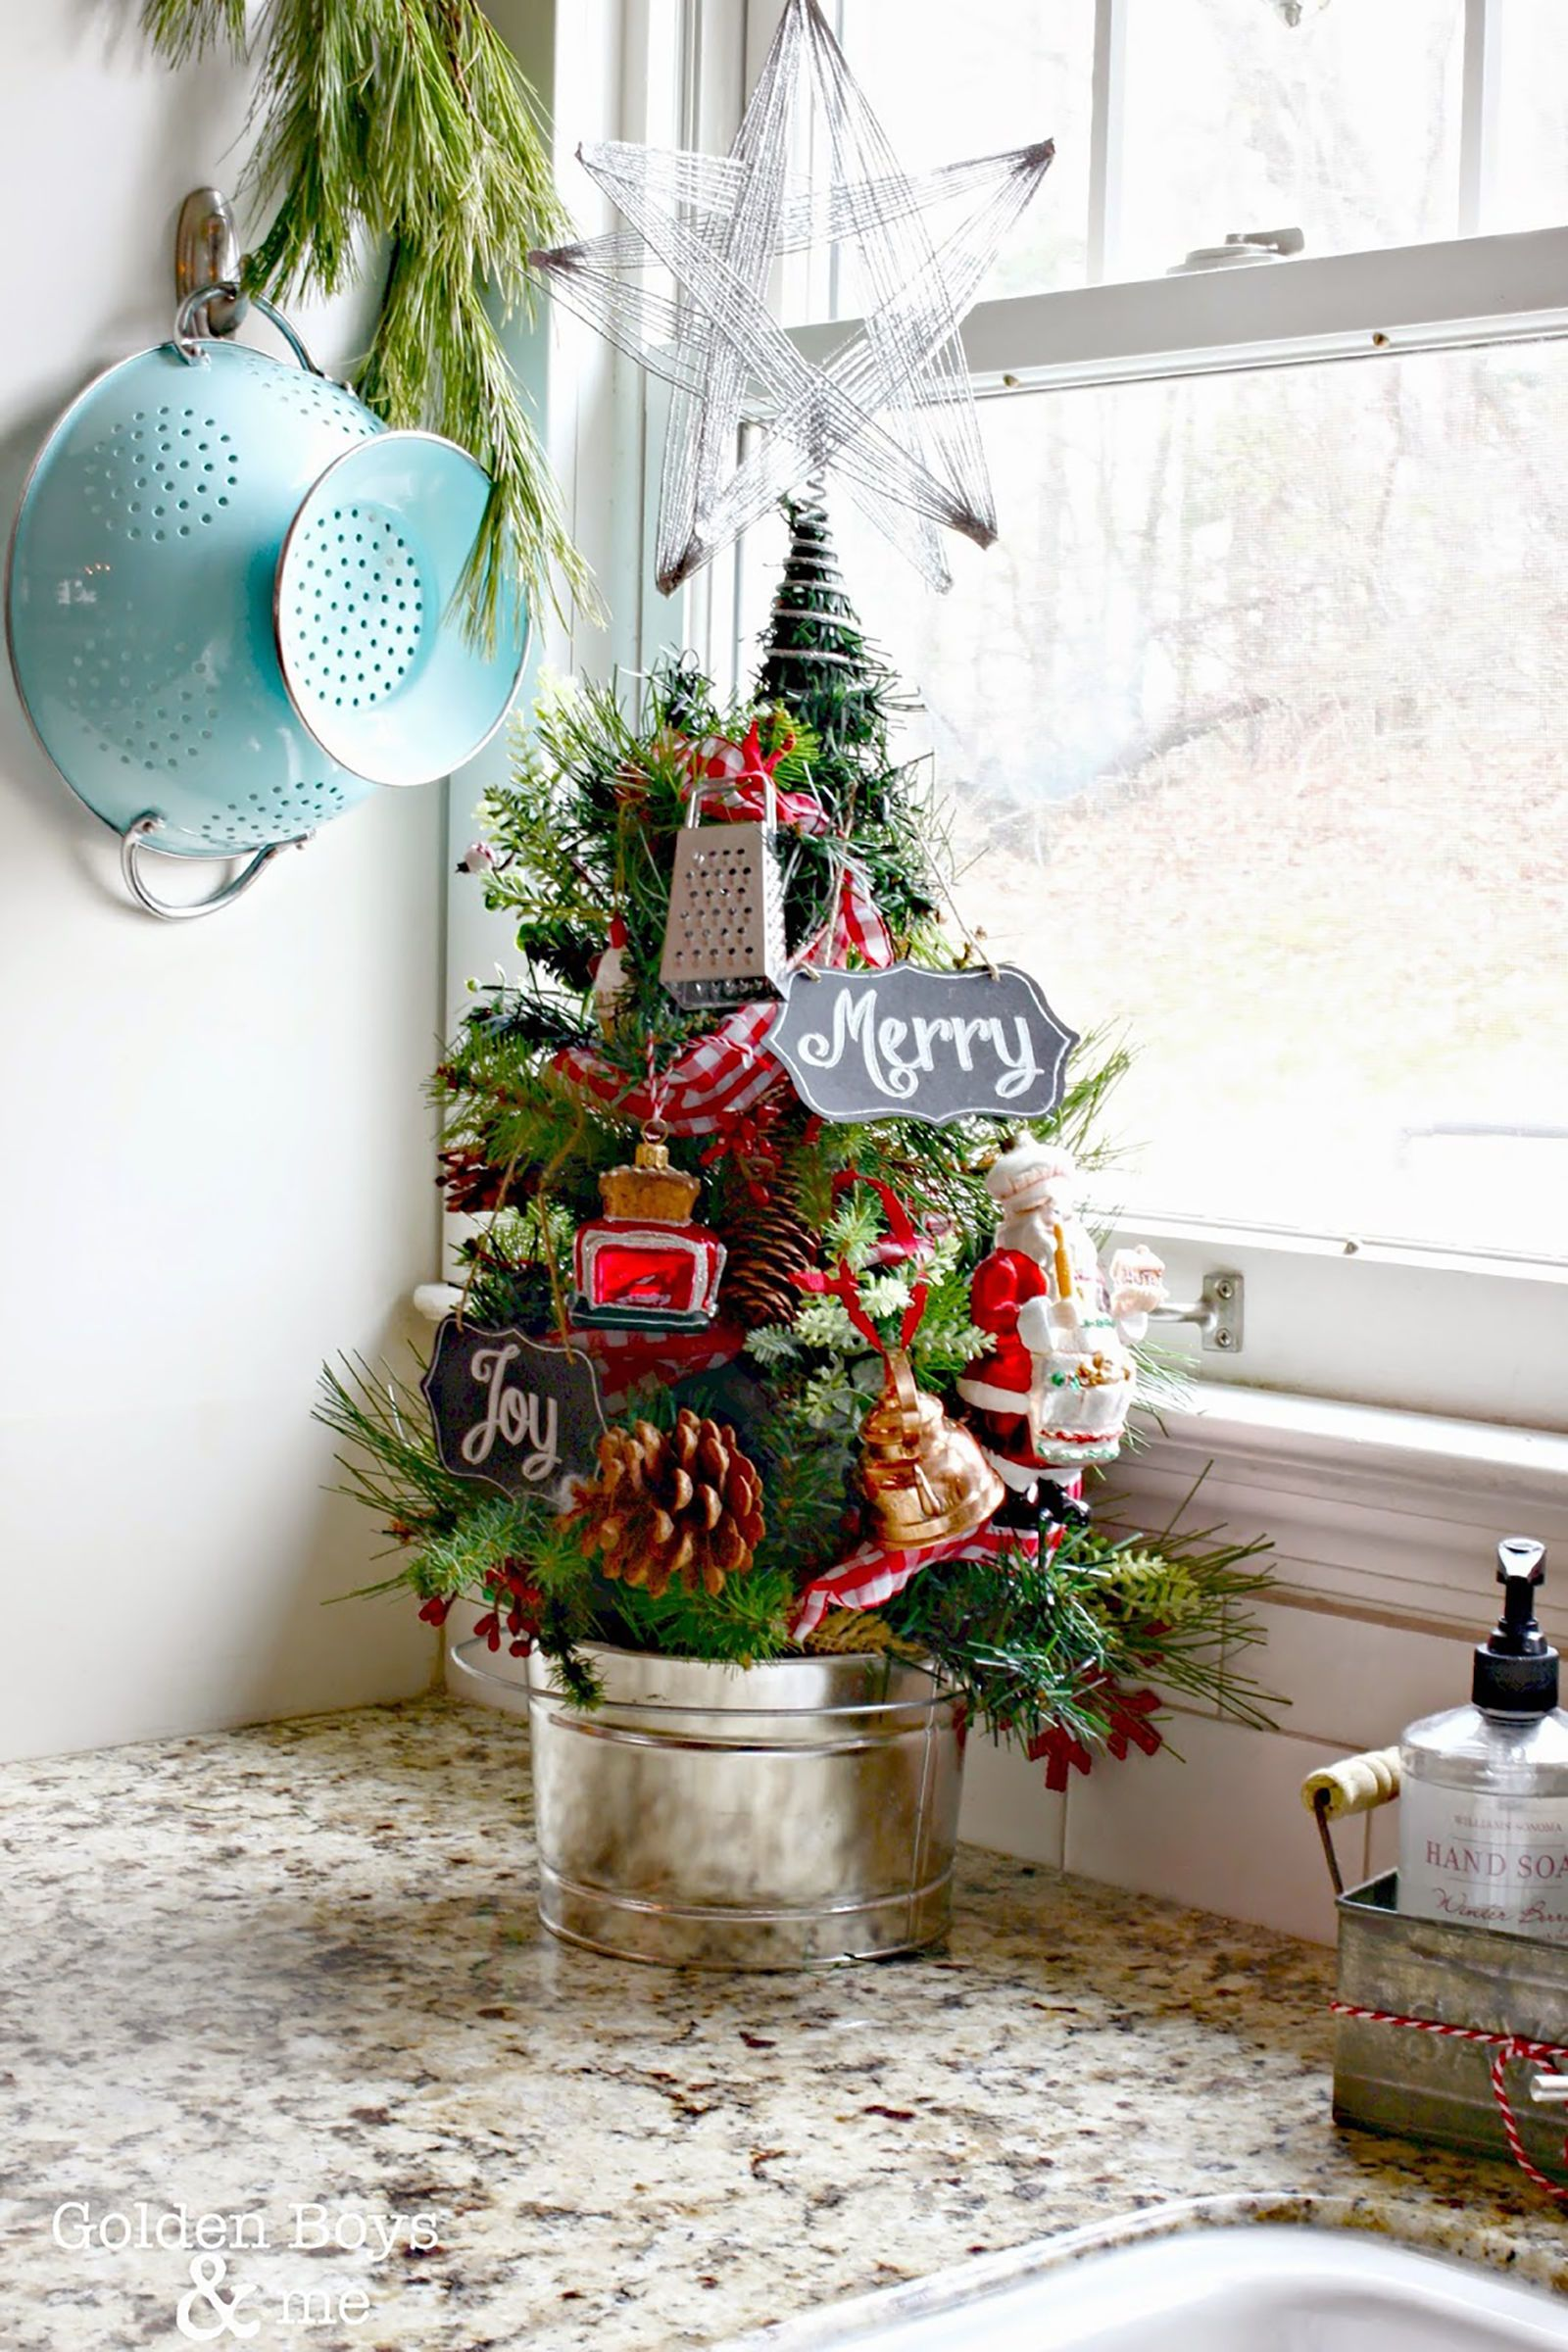 Sapin Deja Decore Adorable Mini Christmas Trees For Small Homes Holiday